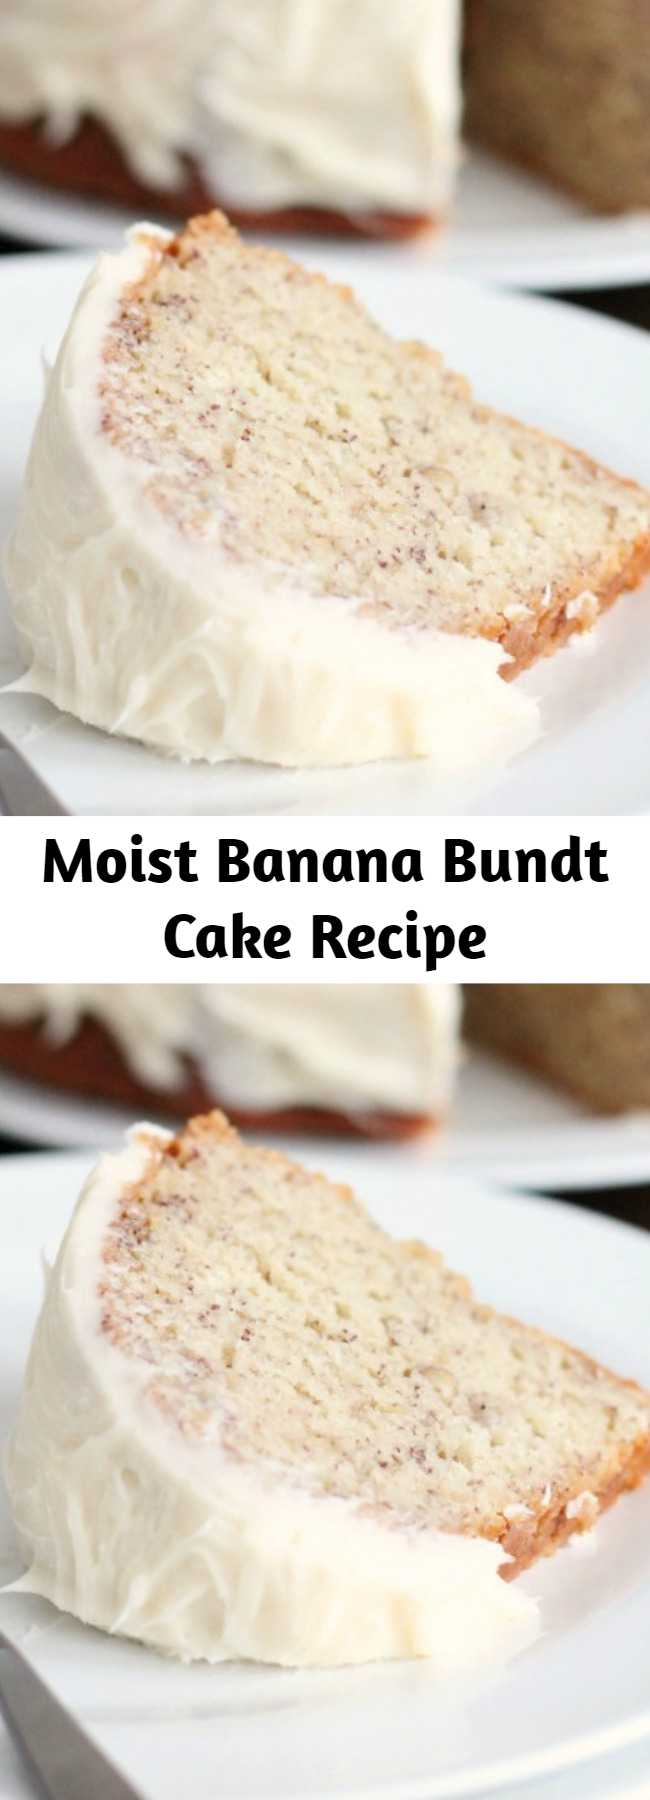 """Moist Banana Bundt Cake Recipe - Exceptionally Moist and flavorful. A special """"freezer trick"""" locks in the moisture. I like to serve the cake slightly chilled. And it just gets better and more moist each day. When possible, make it at least a day in advance of when you plan to serve it."""